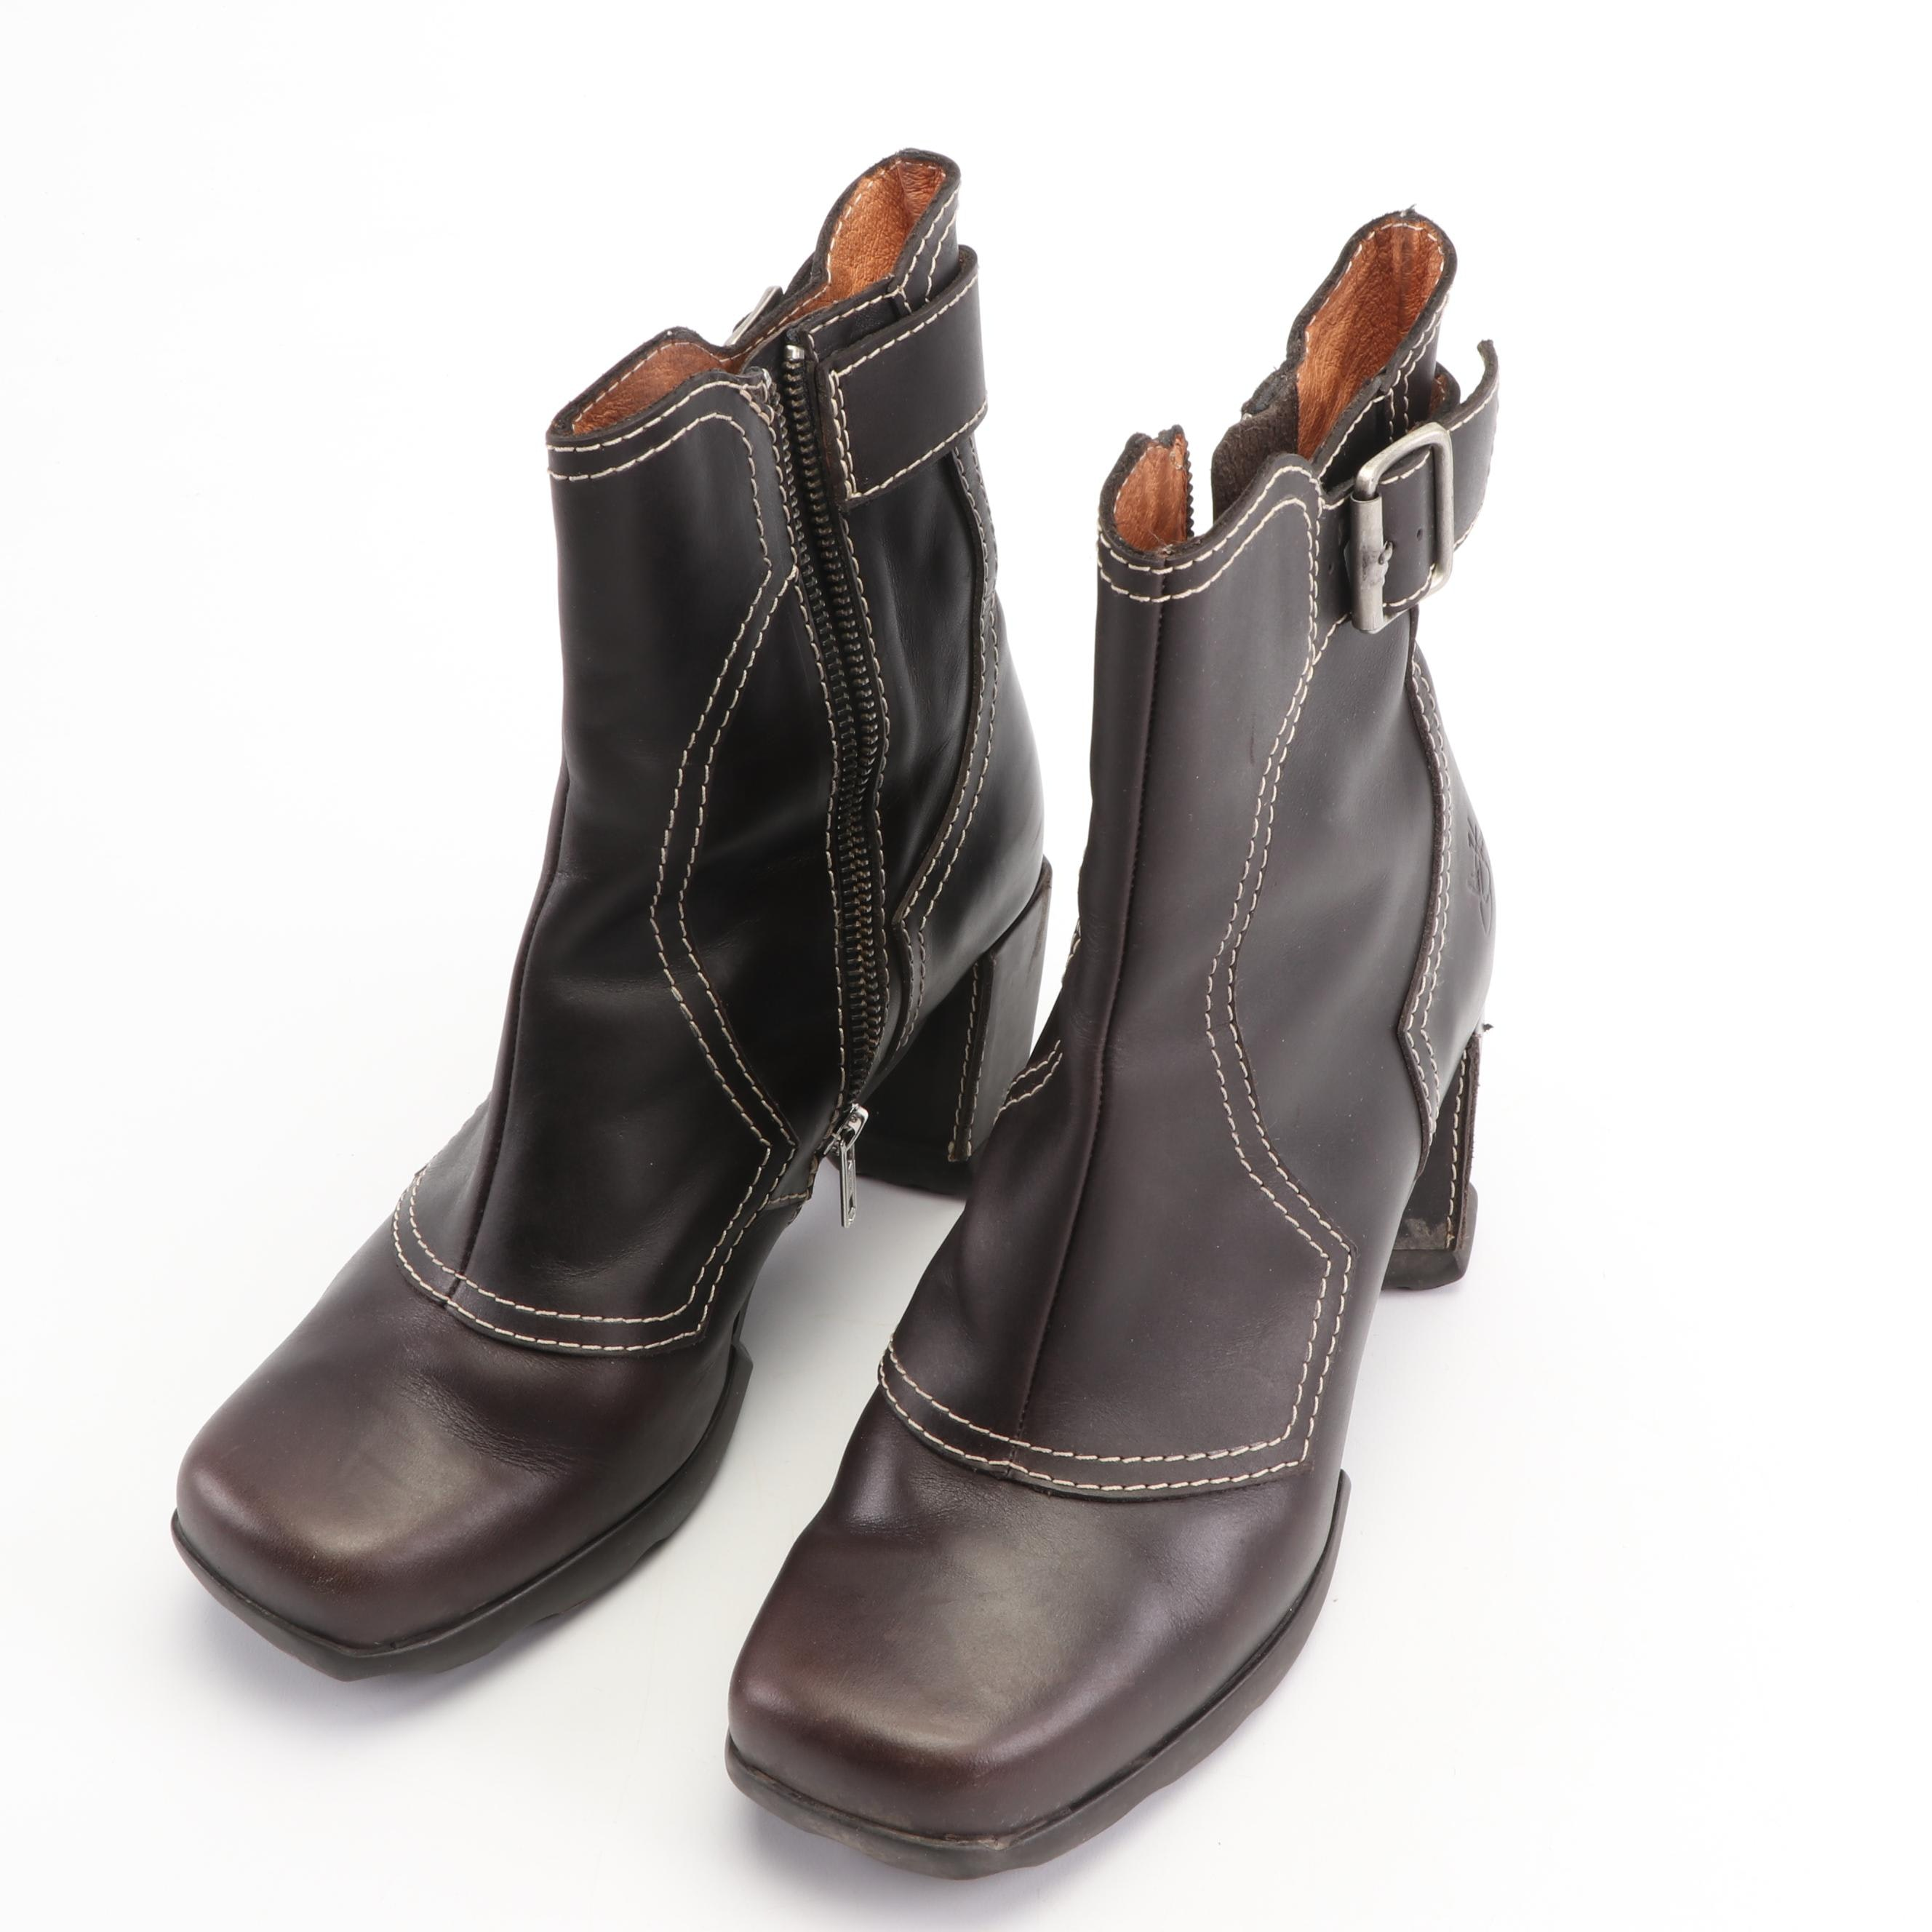 John Fluevog Brown Leather Booties with Stitch Detailing